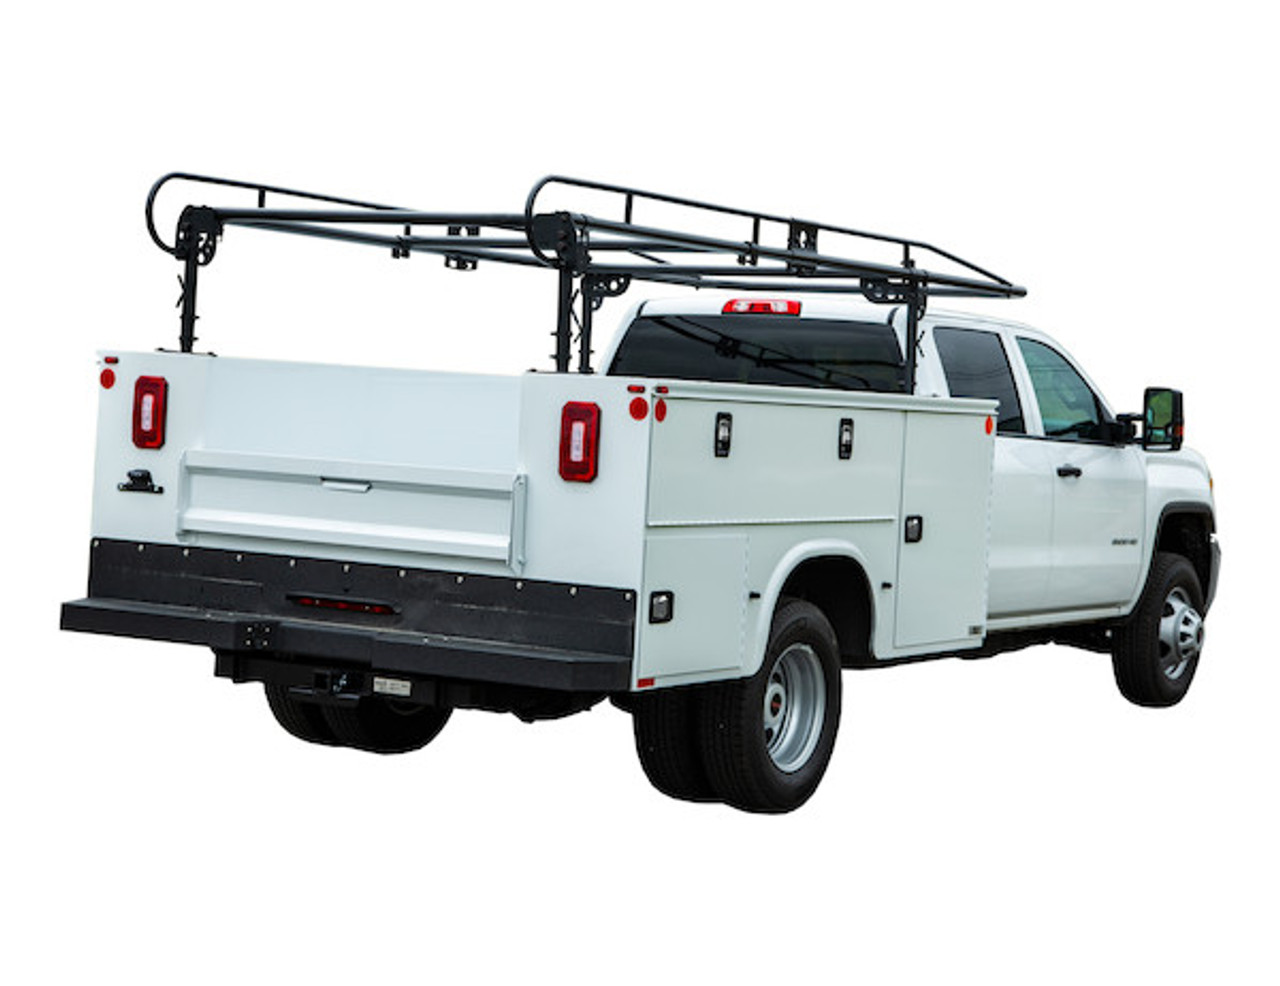 BUYERS 1501250 13-1/2 Foot Black Service Body Ladder Rack for Movers, Contractors, Construction, Painters Picture # 2